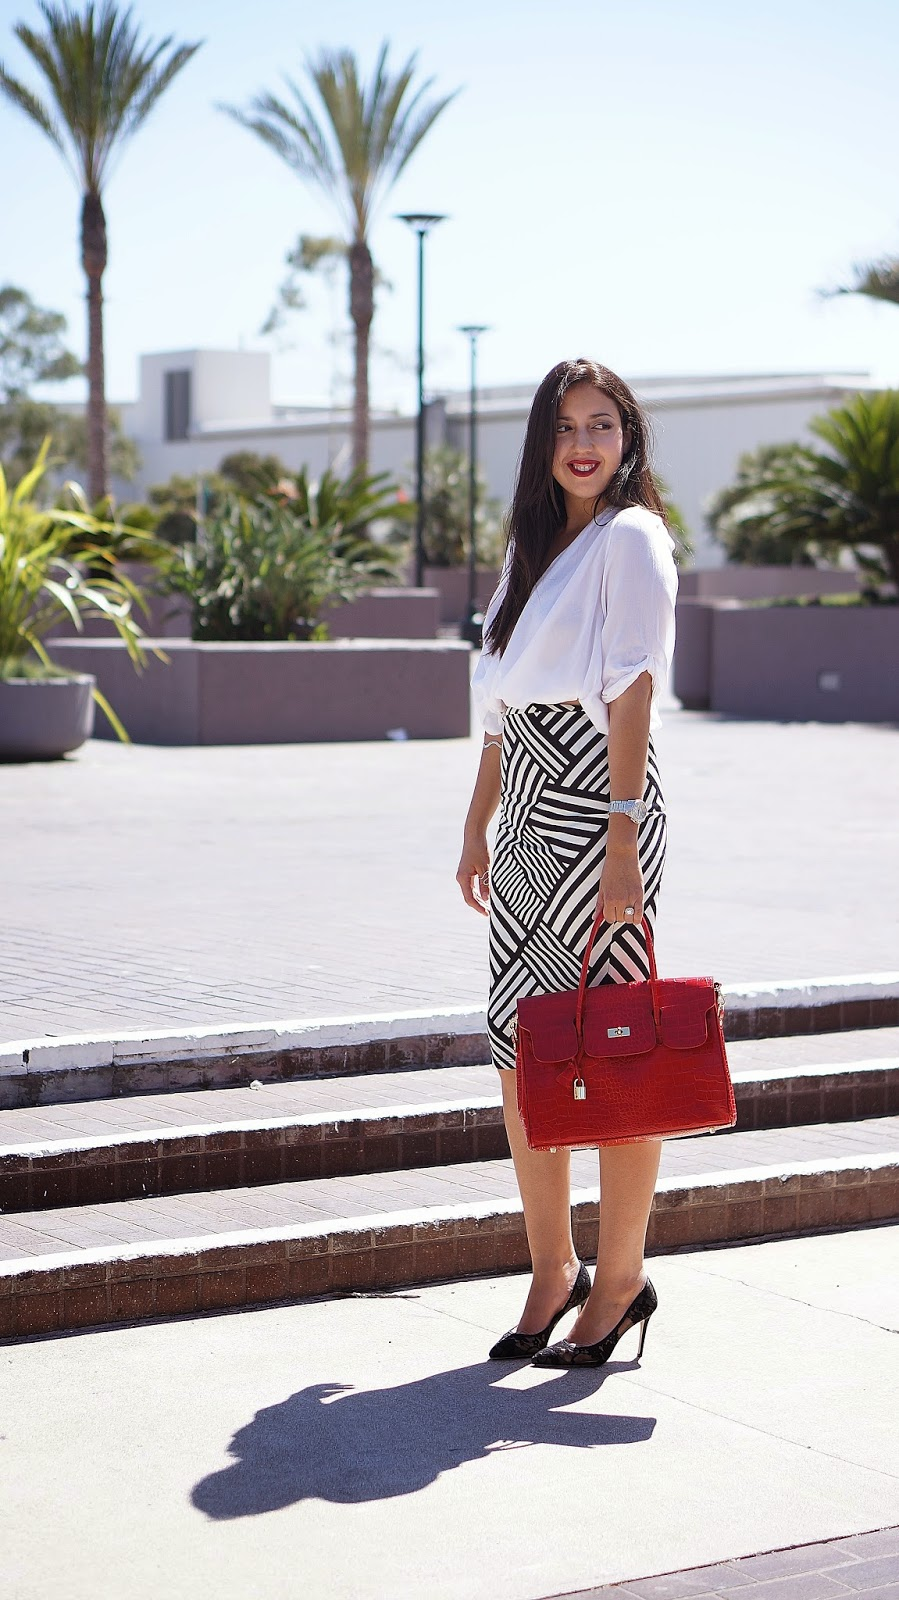 Kardashian Kollection chevron pencil skirt, Fashion blogger, Lace heels, Spring Style, Shoemint black heels